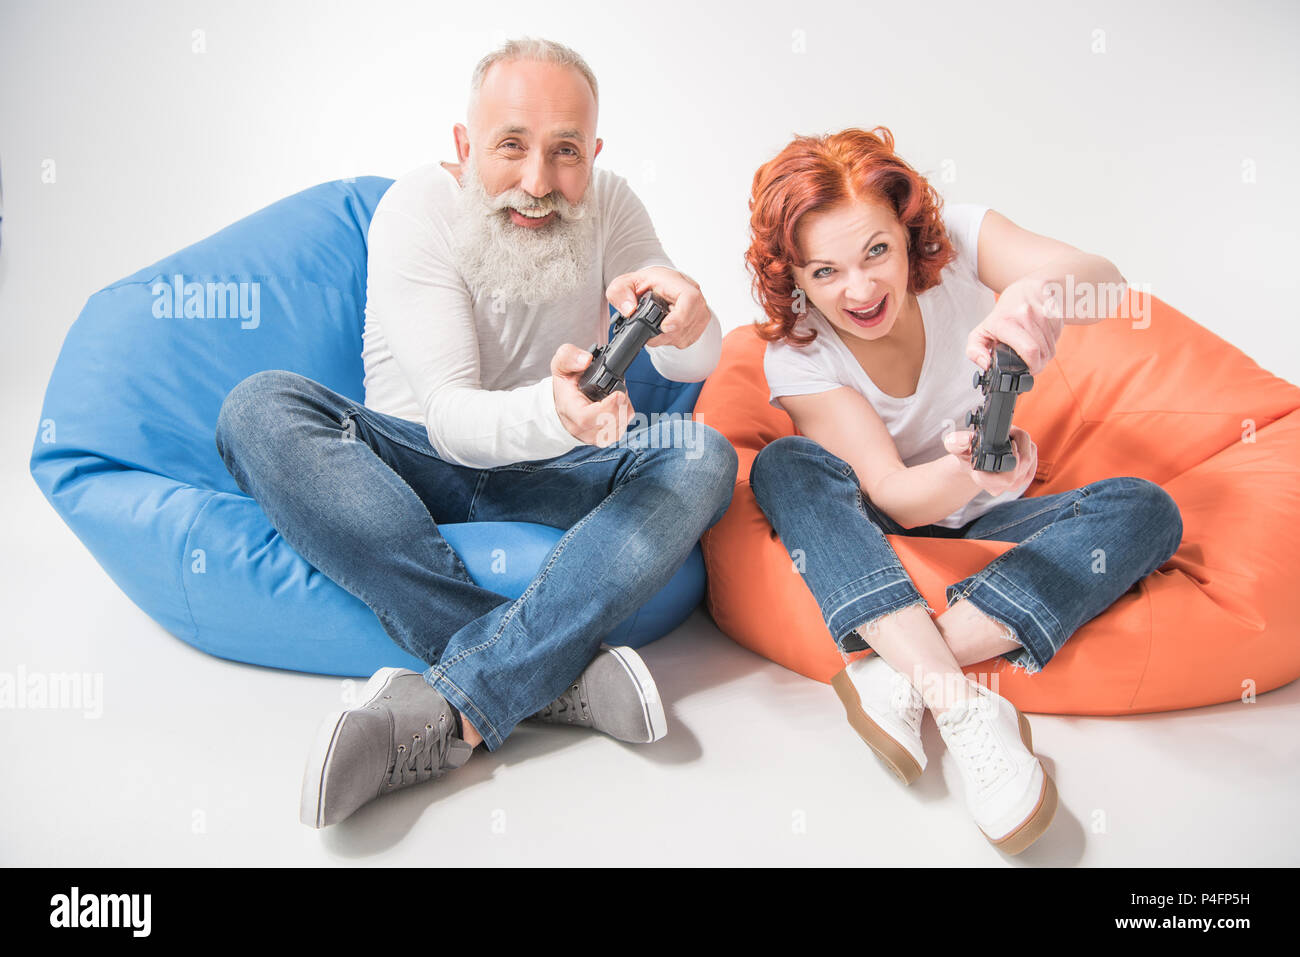 excited mature couple playing video game with joysticks while sitting in bean bag chairs, isolated on white - Stock Image